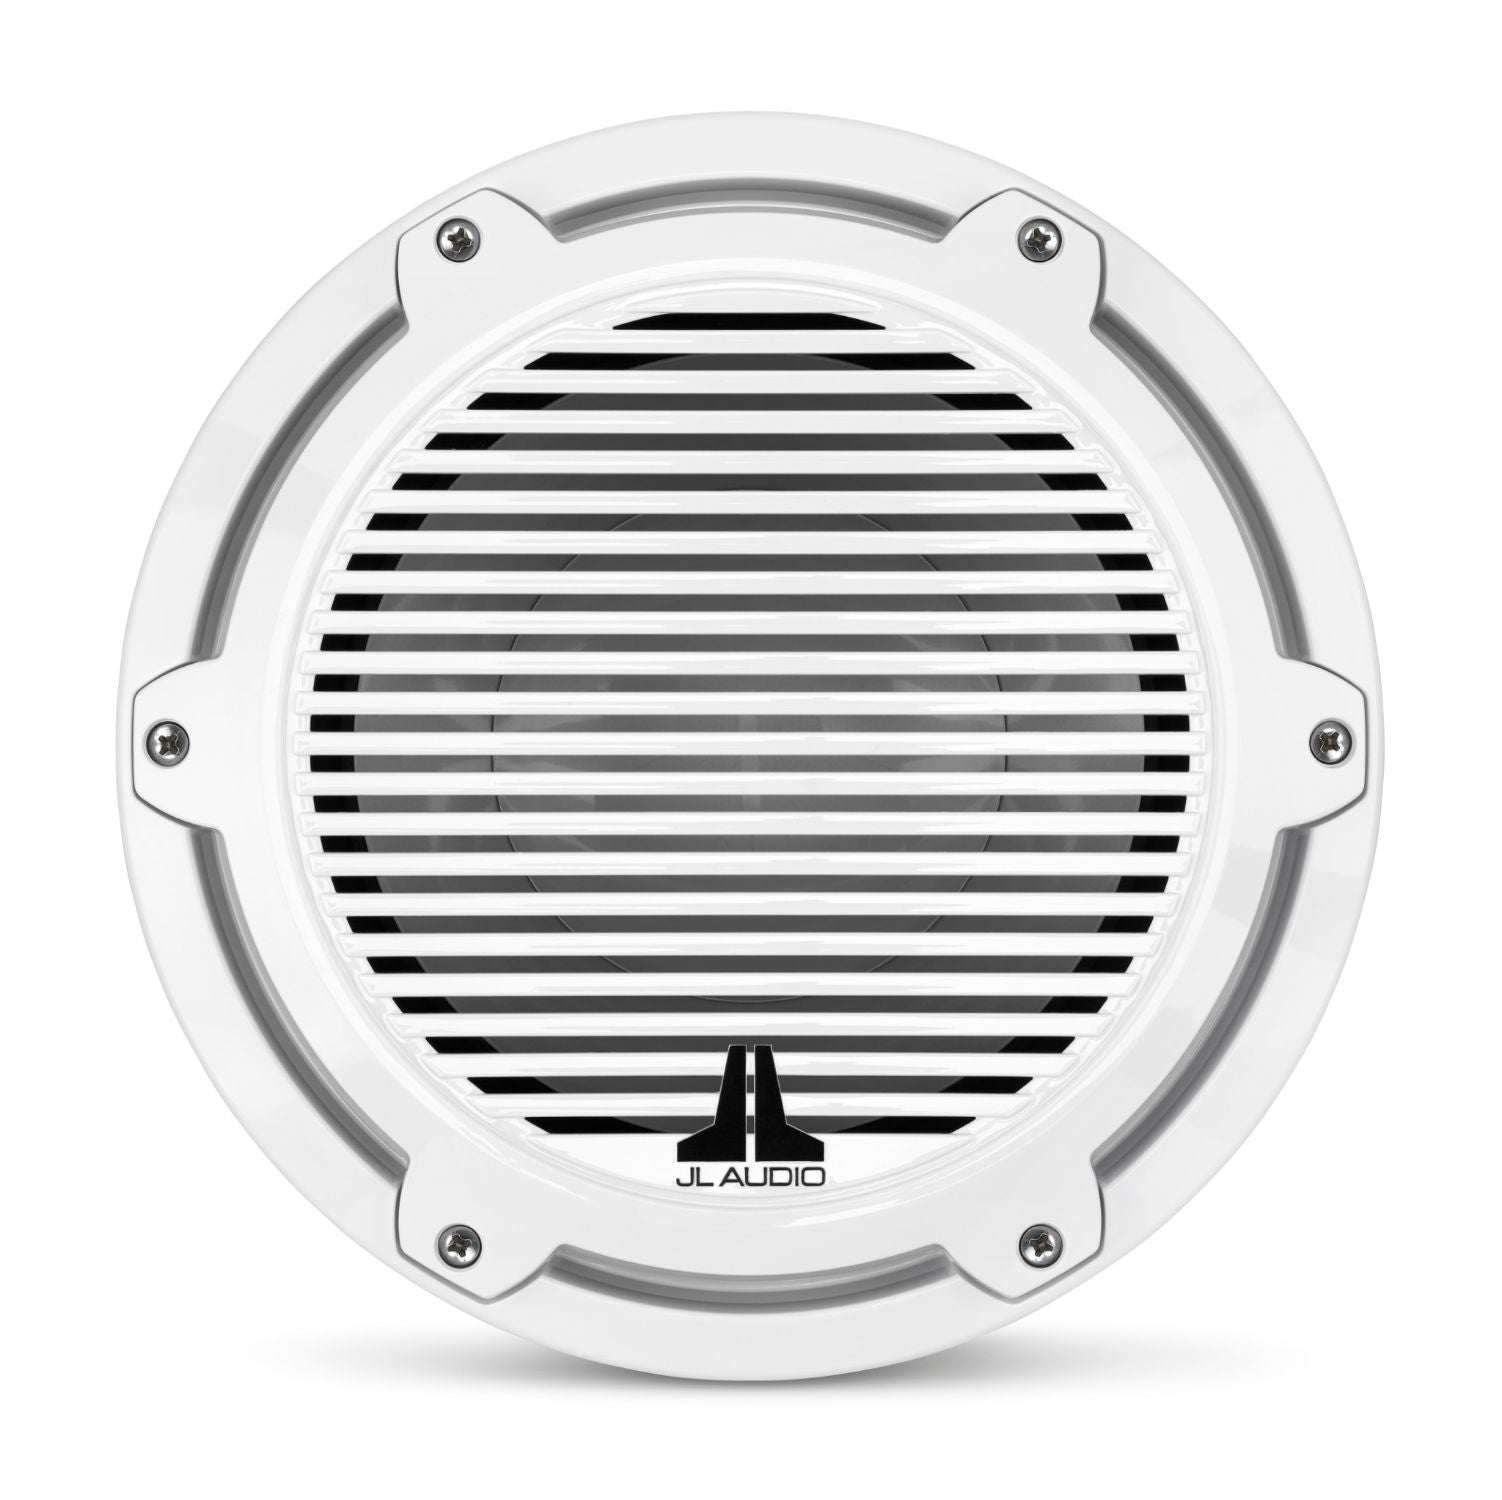 Front Overhead of M6-10IB-C-GWGw-4 Subwoofer